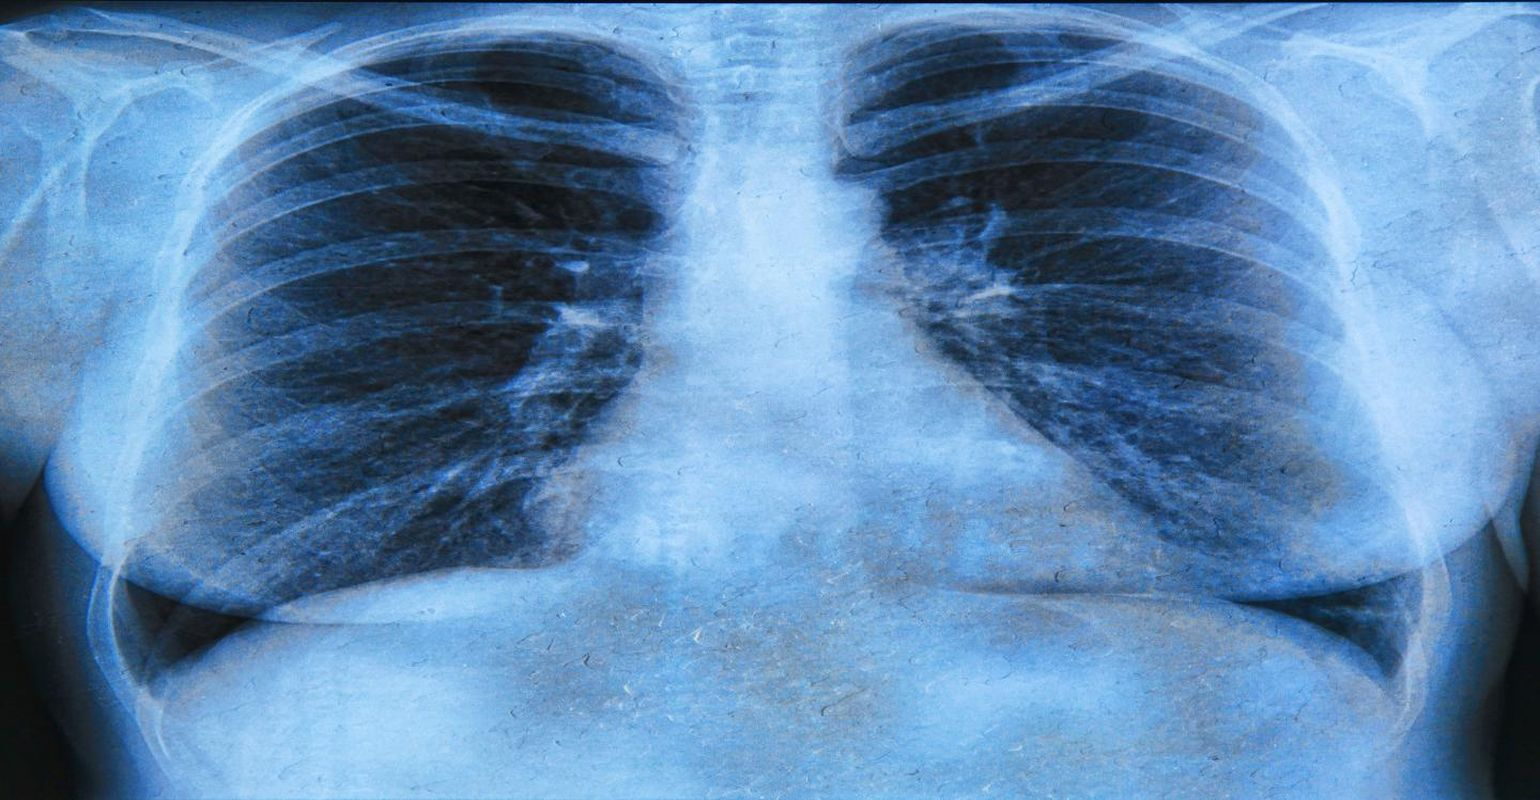 lung infection surgery cost in Delhi